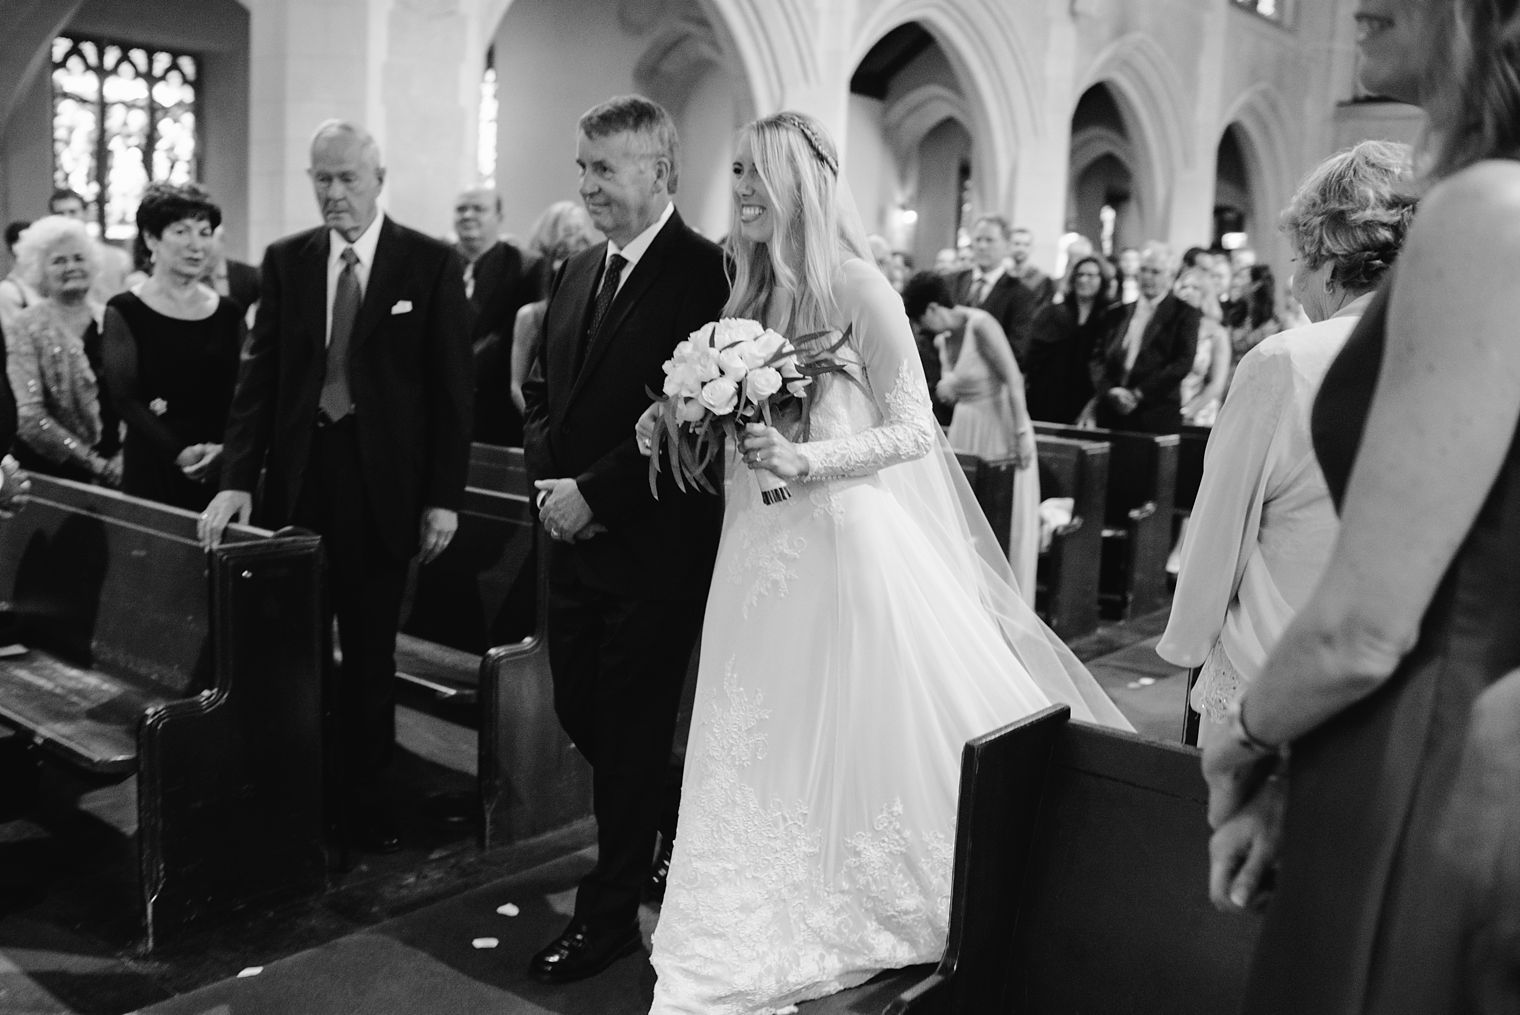 wesley united church wedding vancouver